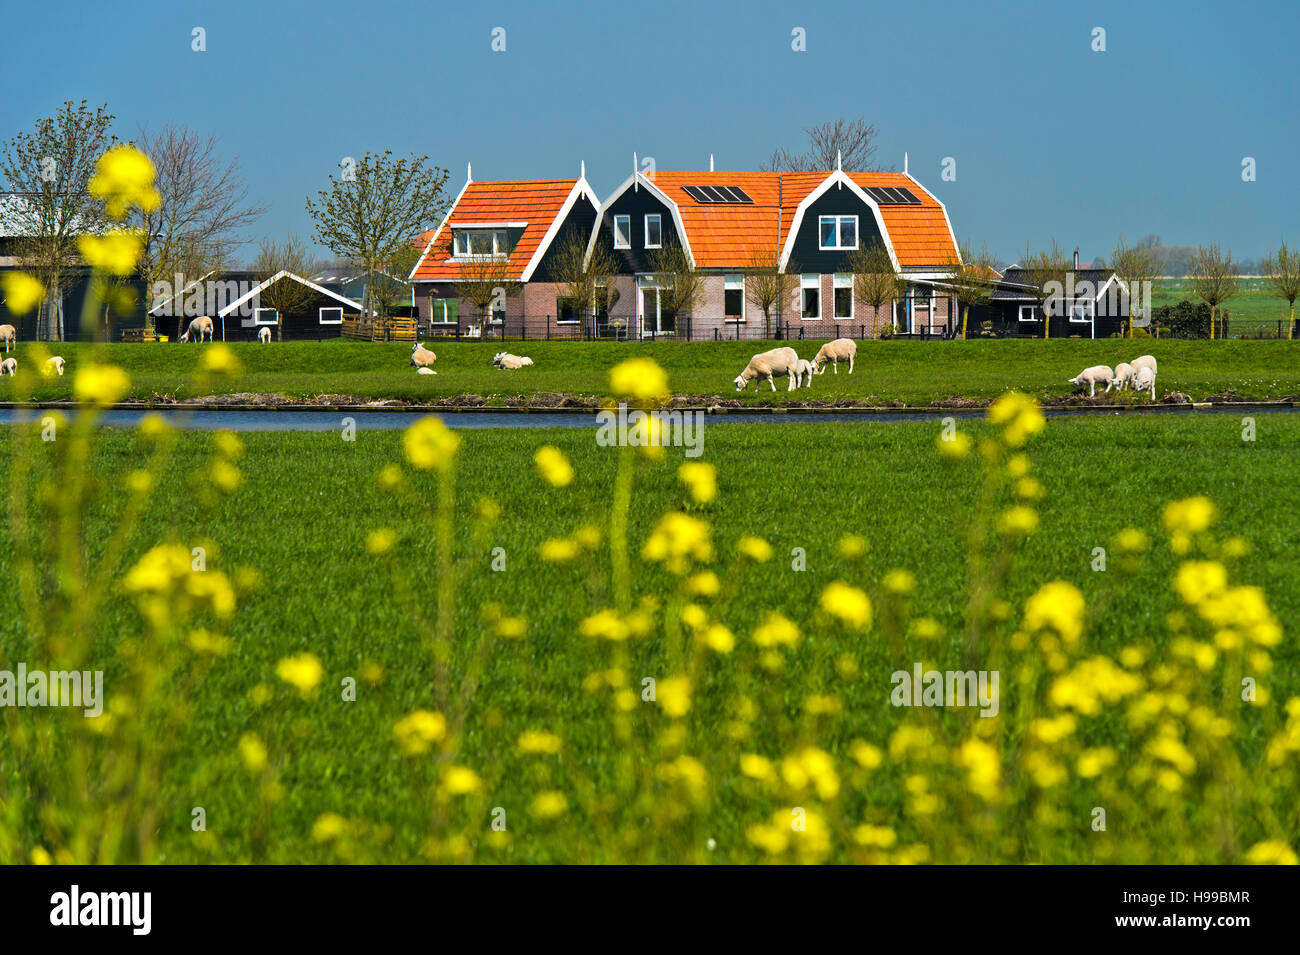 Farm house in the marshland, Beemster, Waterland Region, North Holland, Netherlands - Stock Image